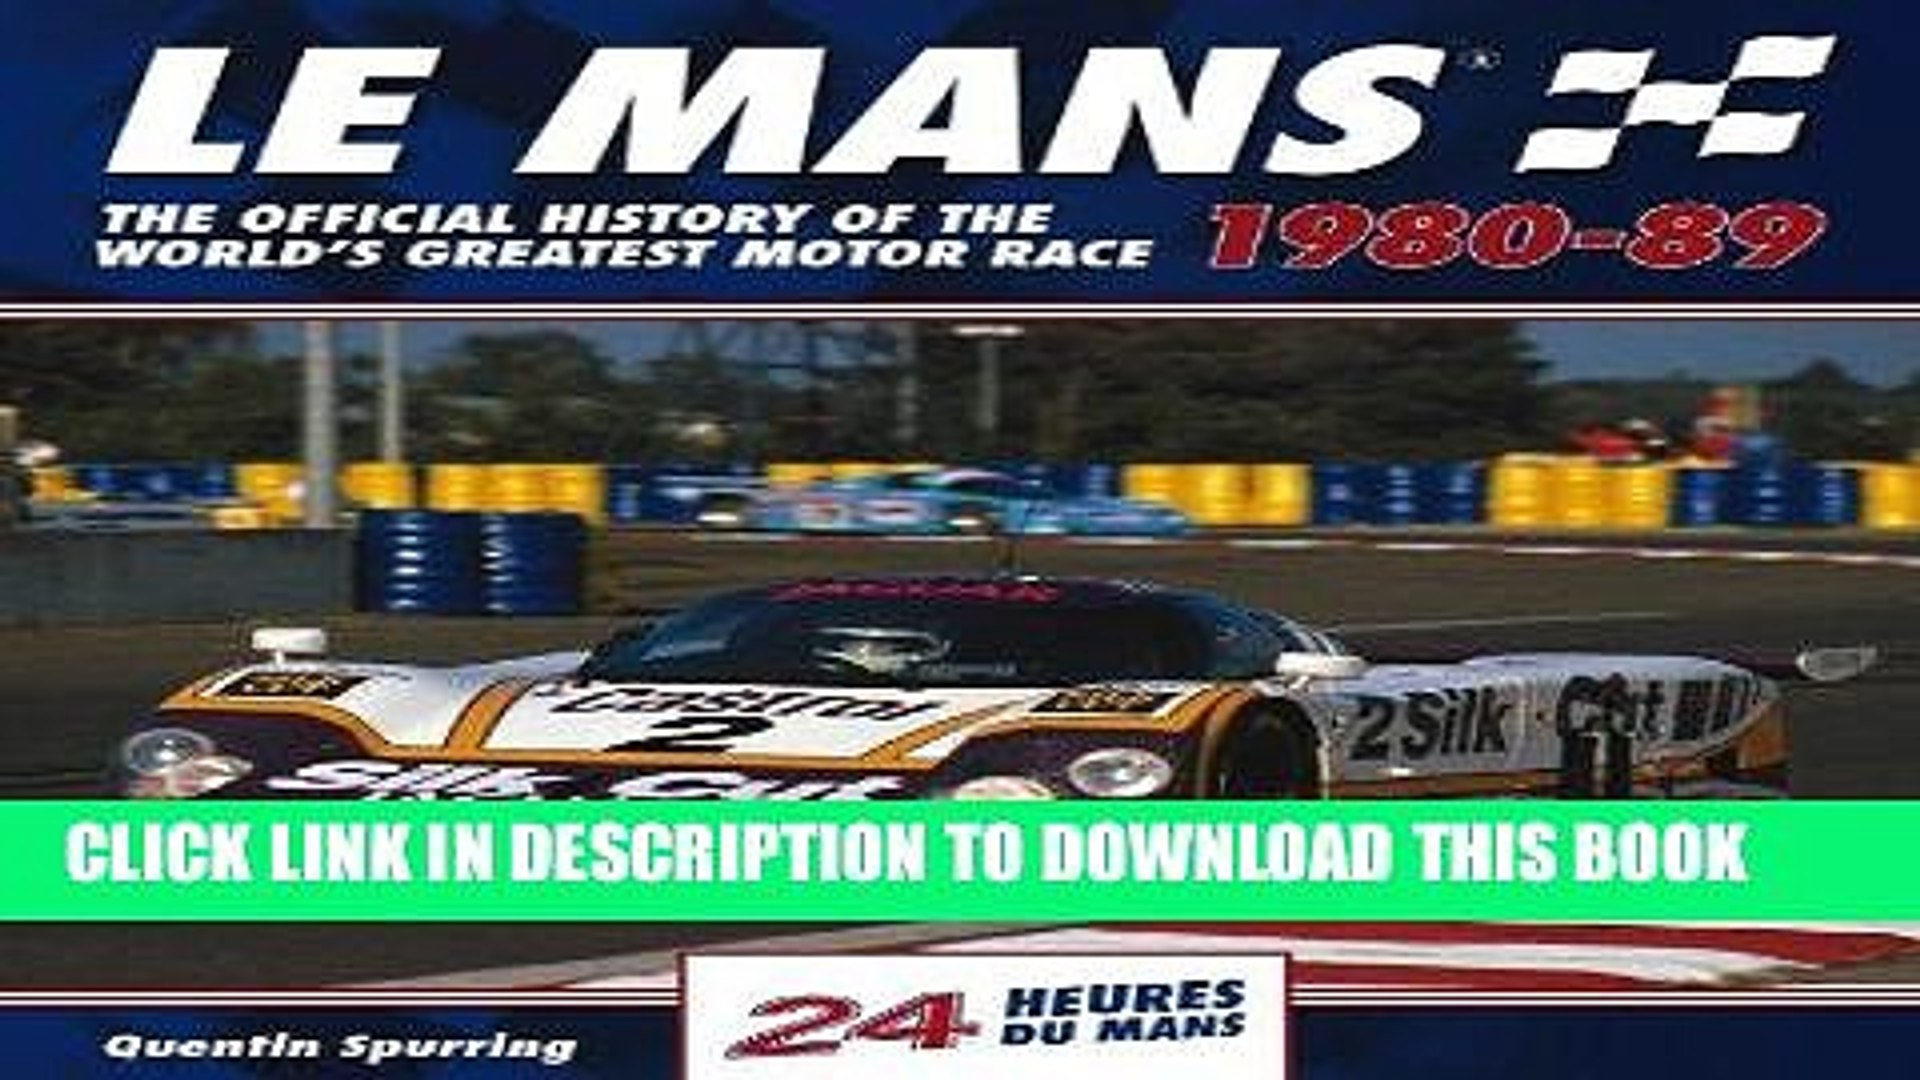 Read Now Le Mans 24 Hours 1980-89: The Official History of the World s Greatest Motor Race 1980-89